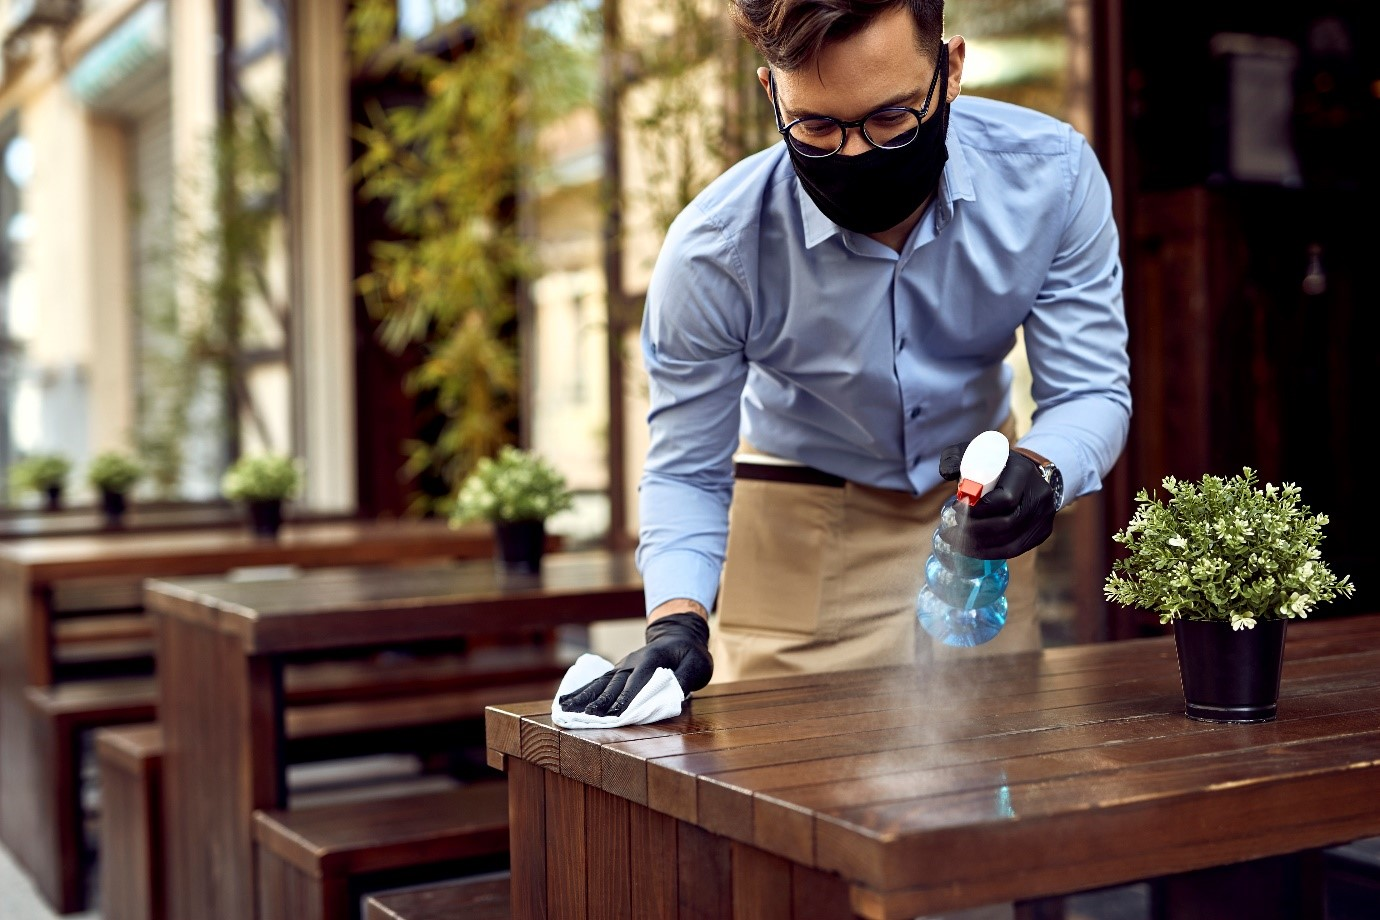 Waiter Cleaning a Table